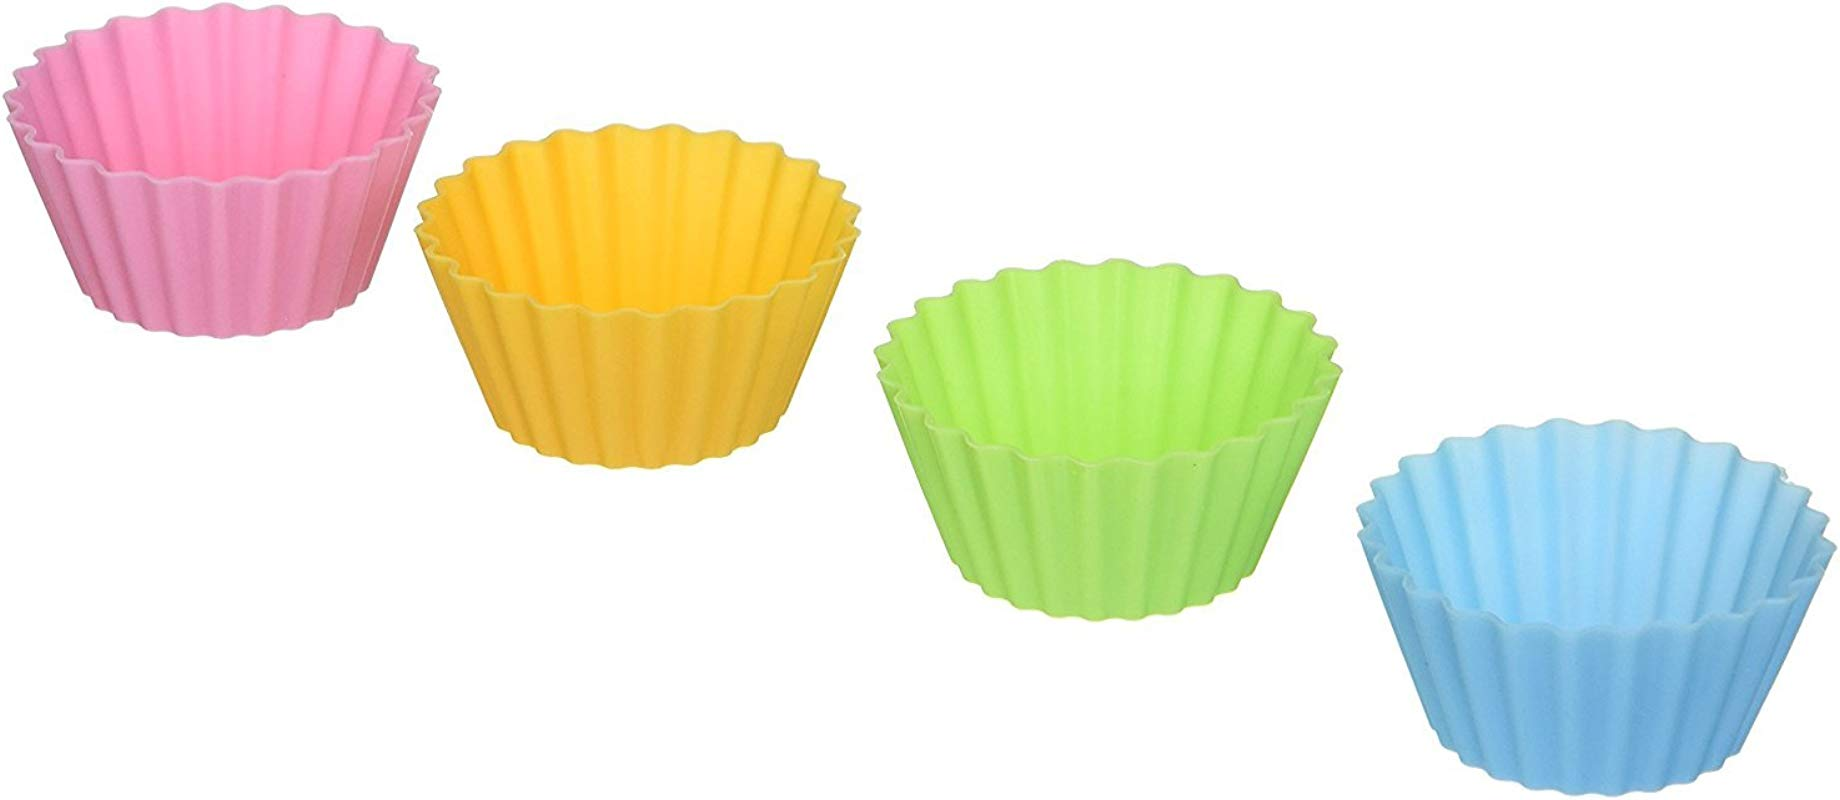 M V Trading Silicone Food Cup Or Sushi Mold For A Lunch Box Set Of 4